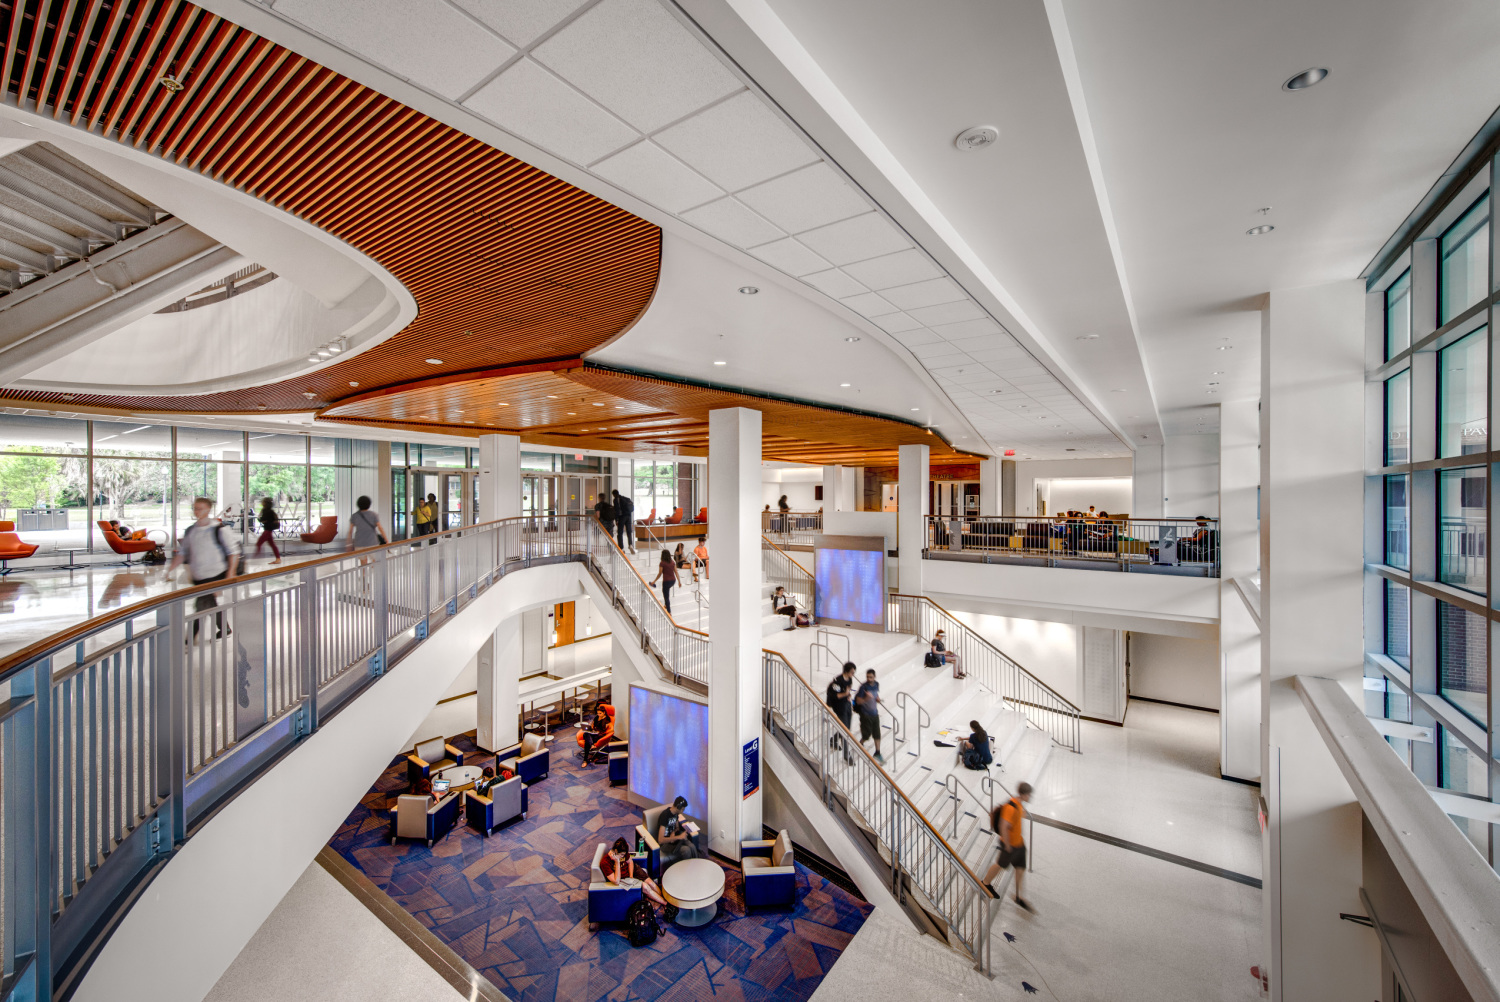 university of florida reitz student union cannondesign